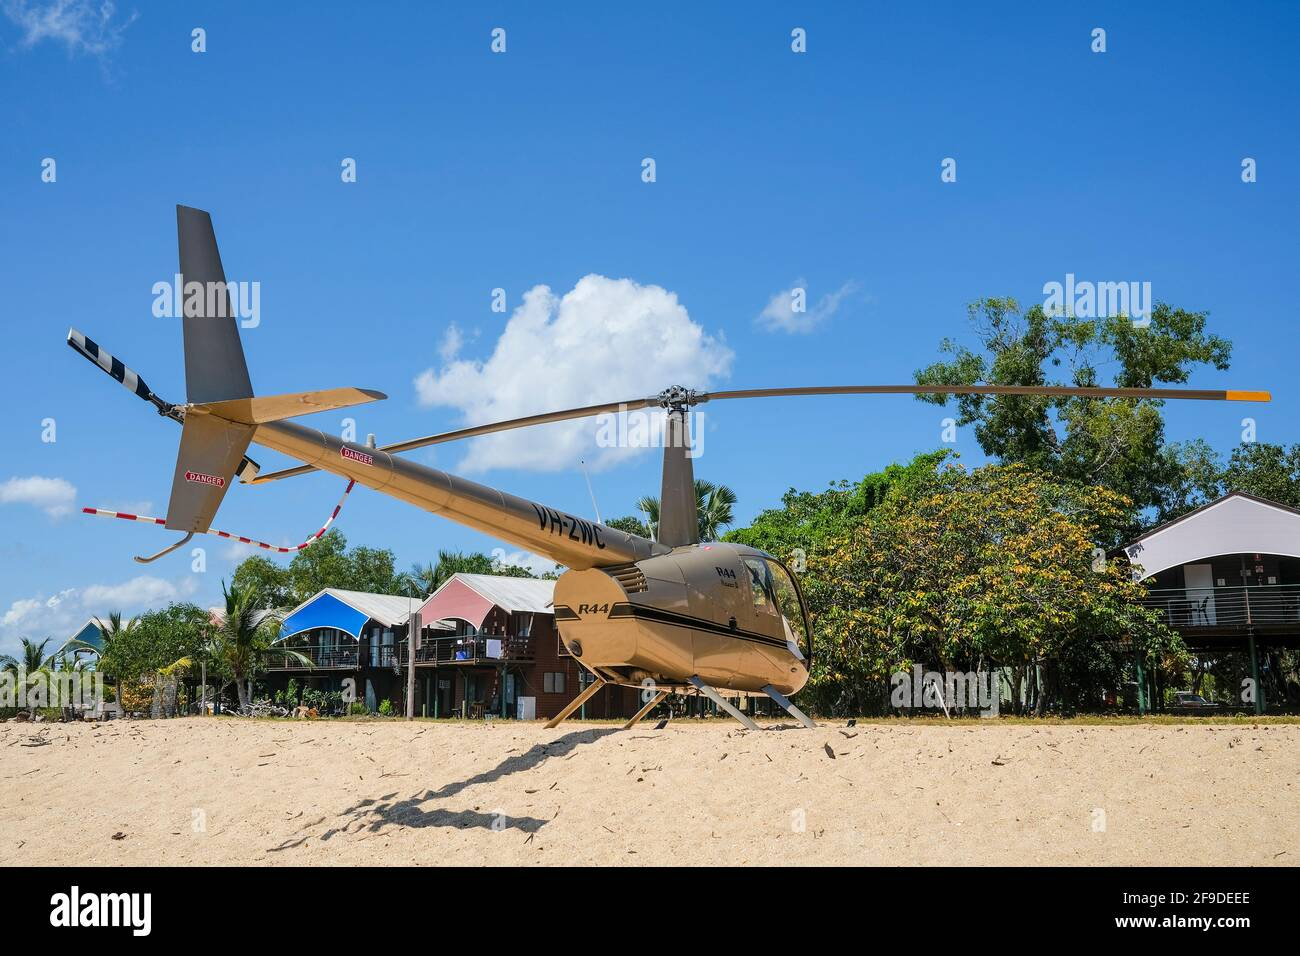 helicopter-on-the-beach-of-crab-claw-isl